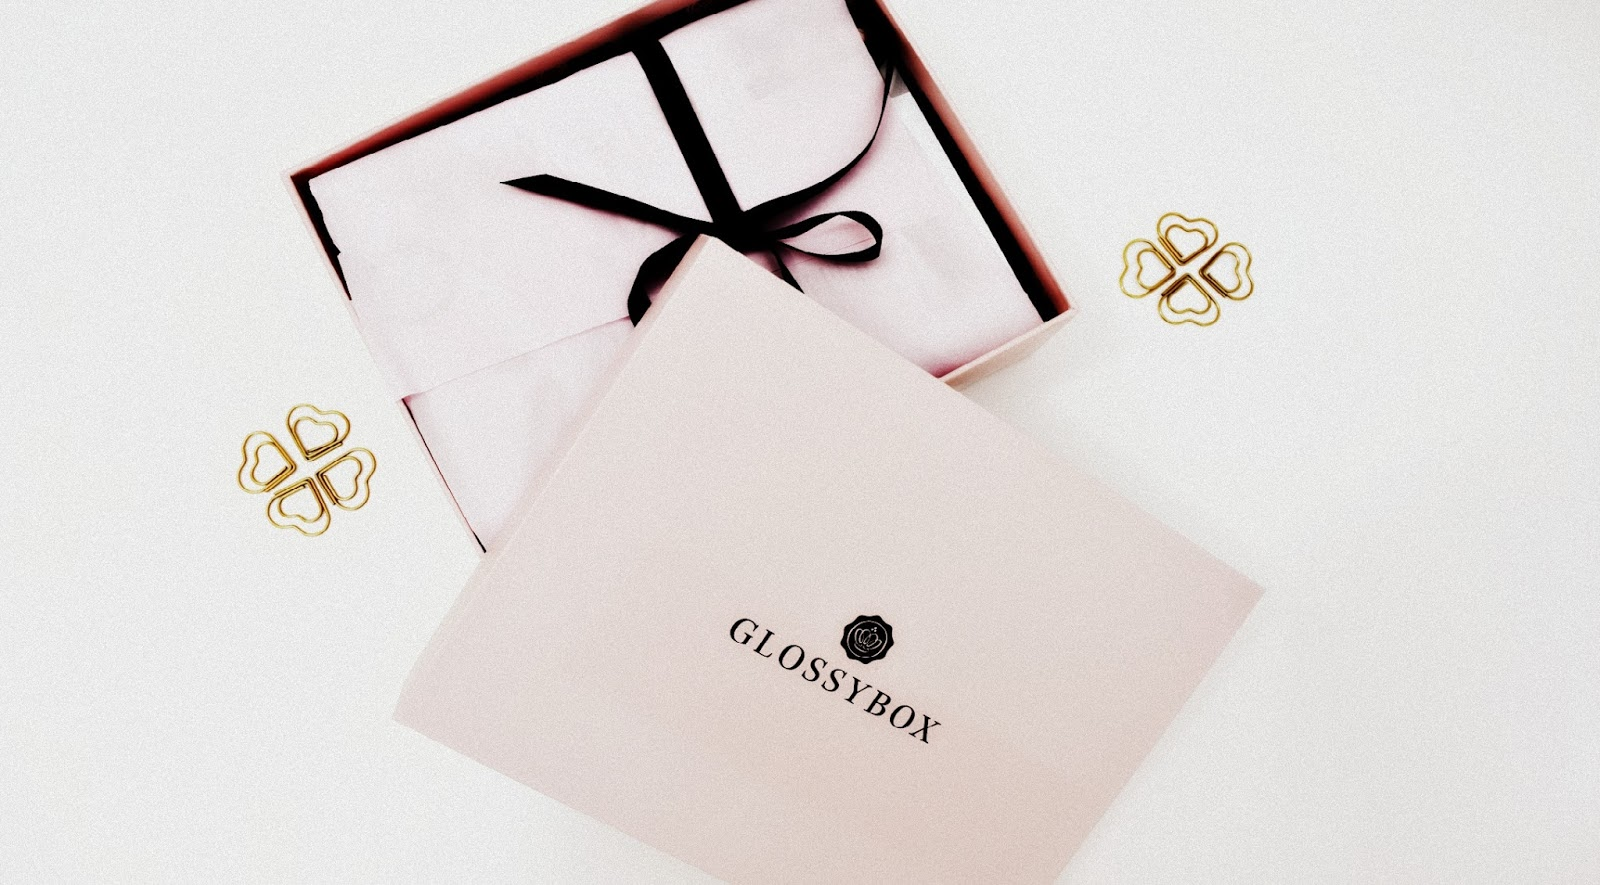 Glossybox review july 2016